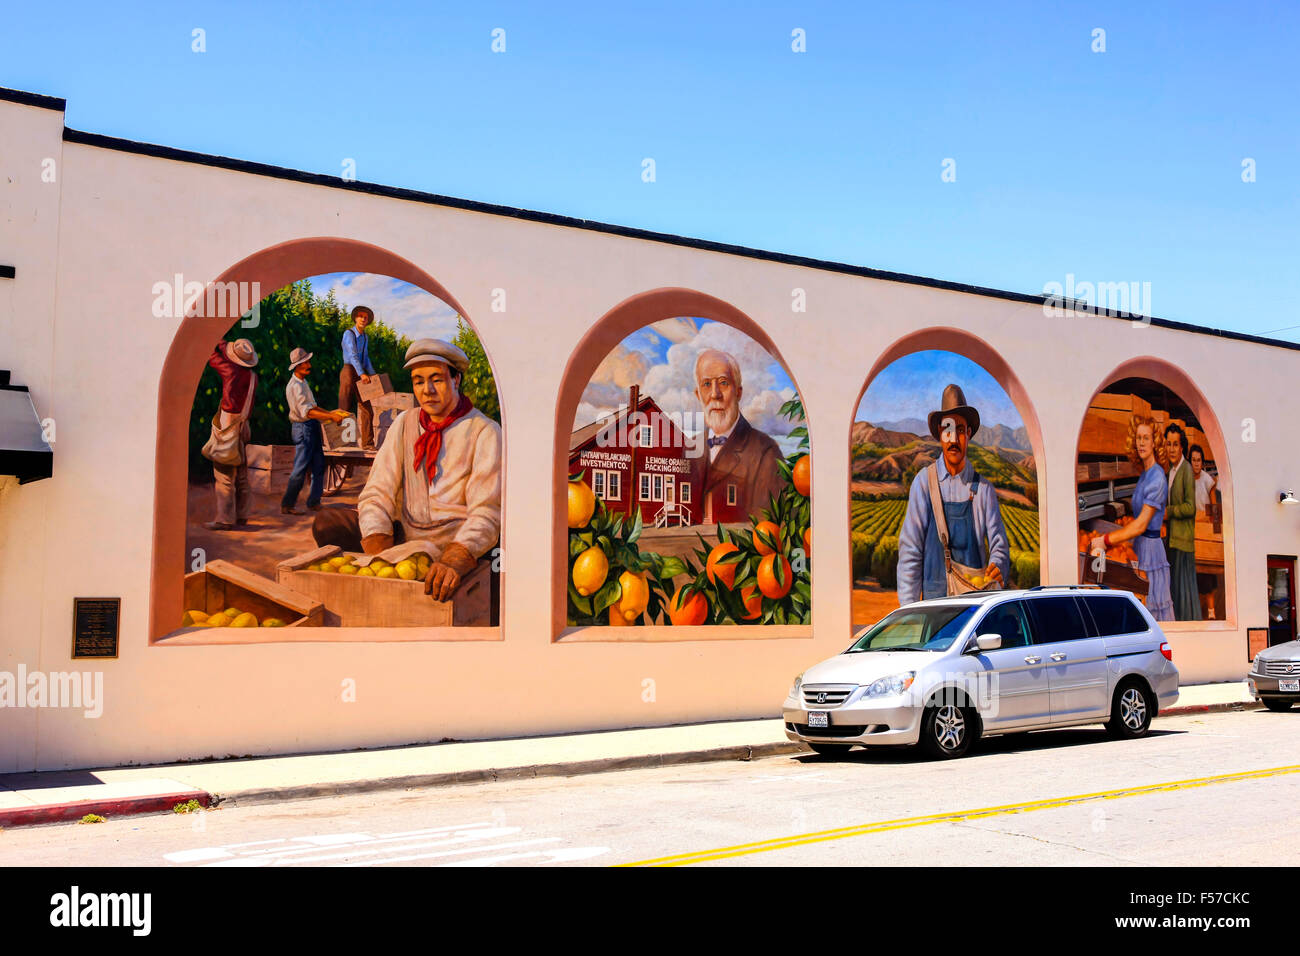 modern murals stock photos modern murals stock images alamy wall murals on the side of buildings in downtown santa paula city in california stock